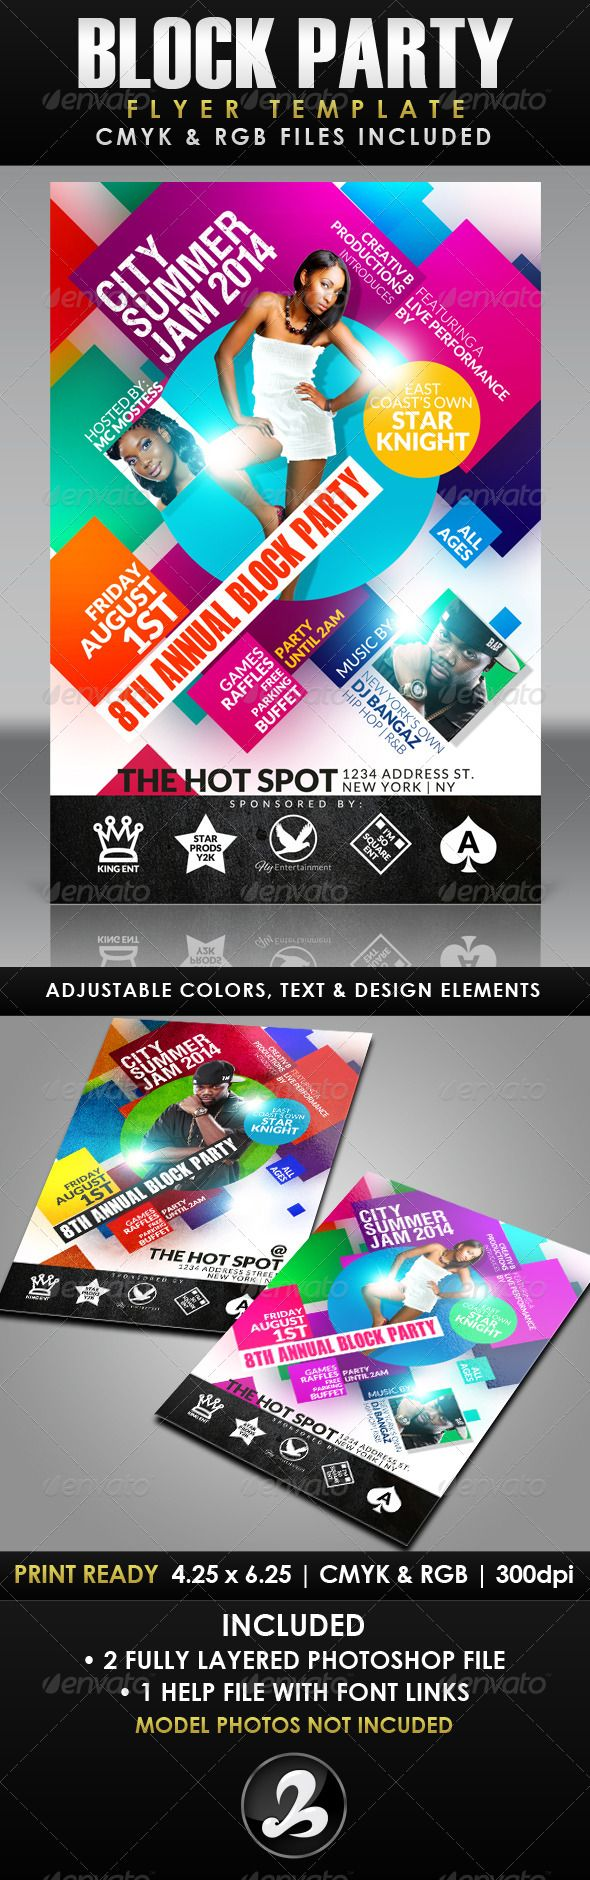 17 Best images about Invitation templates on Pinterest | Dj party ...